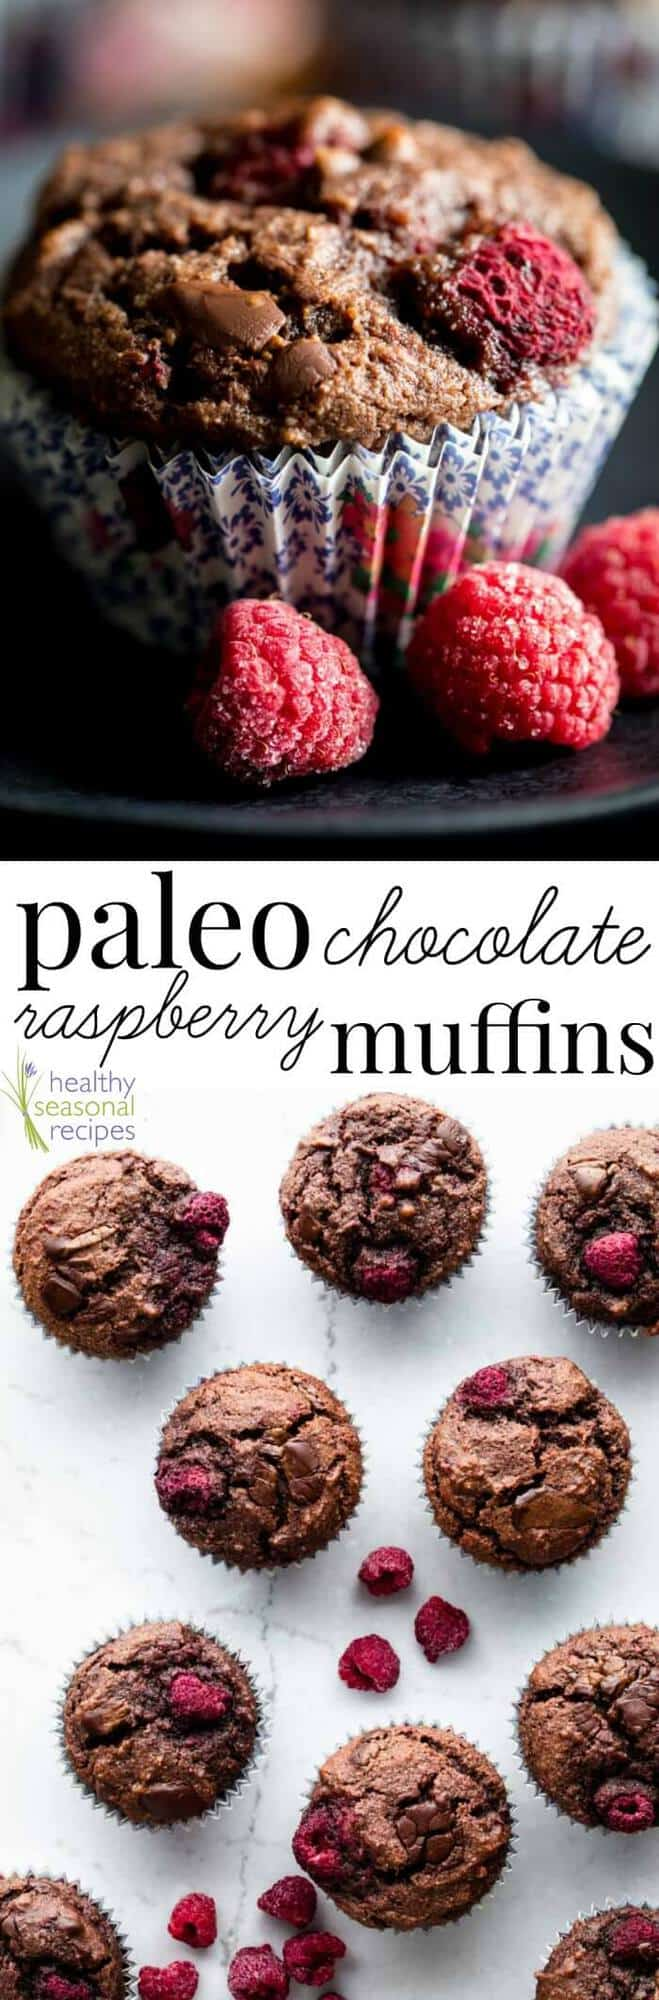 These Paleo Chocolate Raspberry Muffins are a healthy Valentines Day Snack or breakfast. They grain-free and 100% dairy-free! Super light and they contain 2 cups of frozen raspberries, so they have 4 grams of fiber each. Plus 6 grams protein! #paleo #muffin #snack #chocolate #raspberries #valentinesday #healthy #snack #breakfast #baking